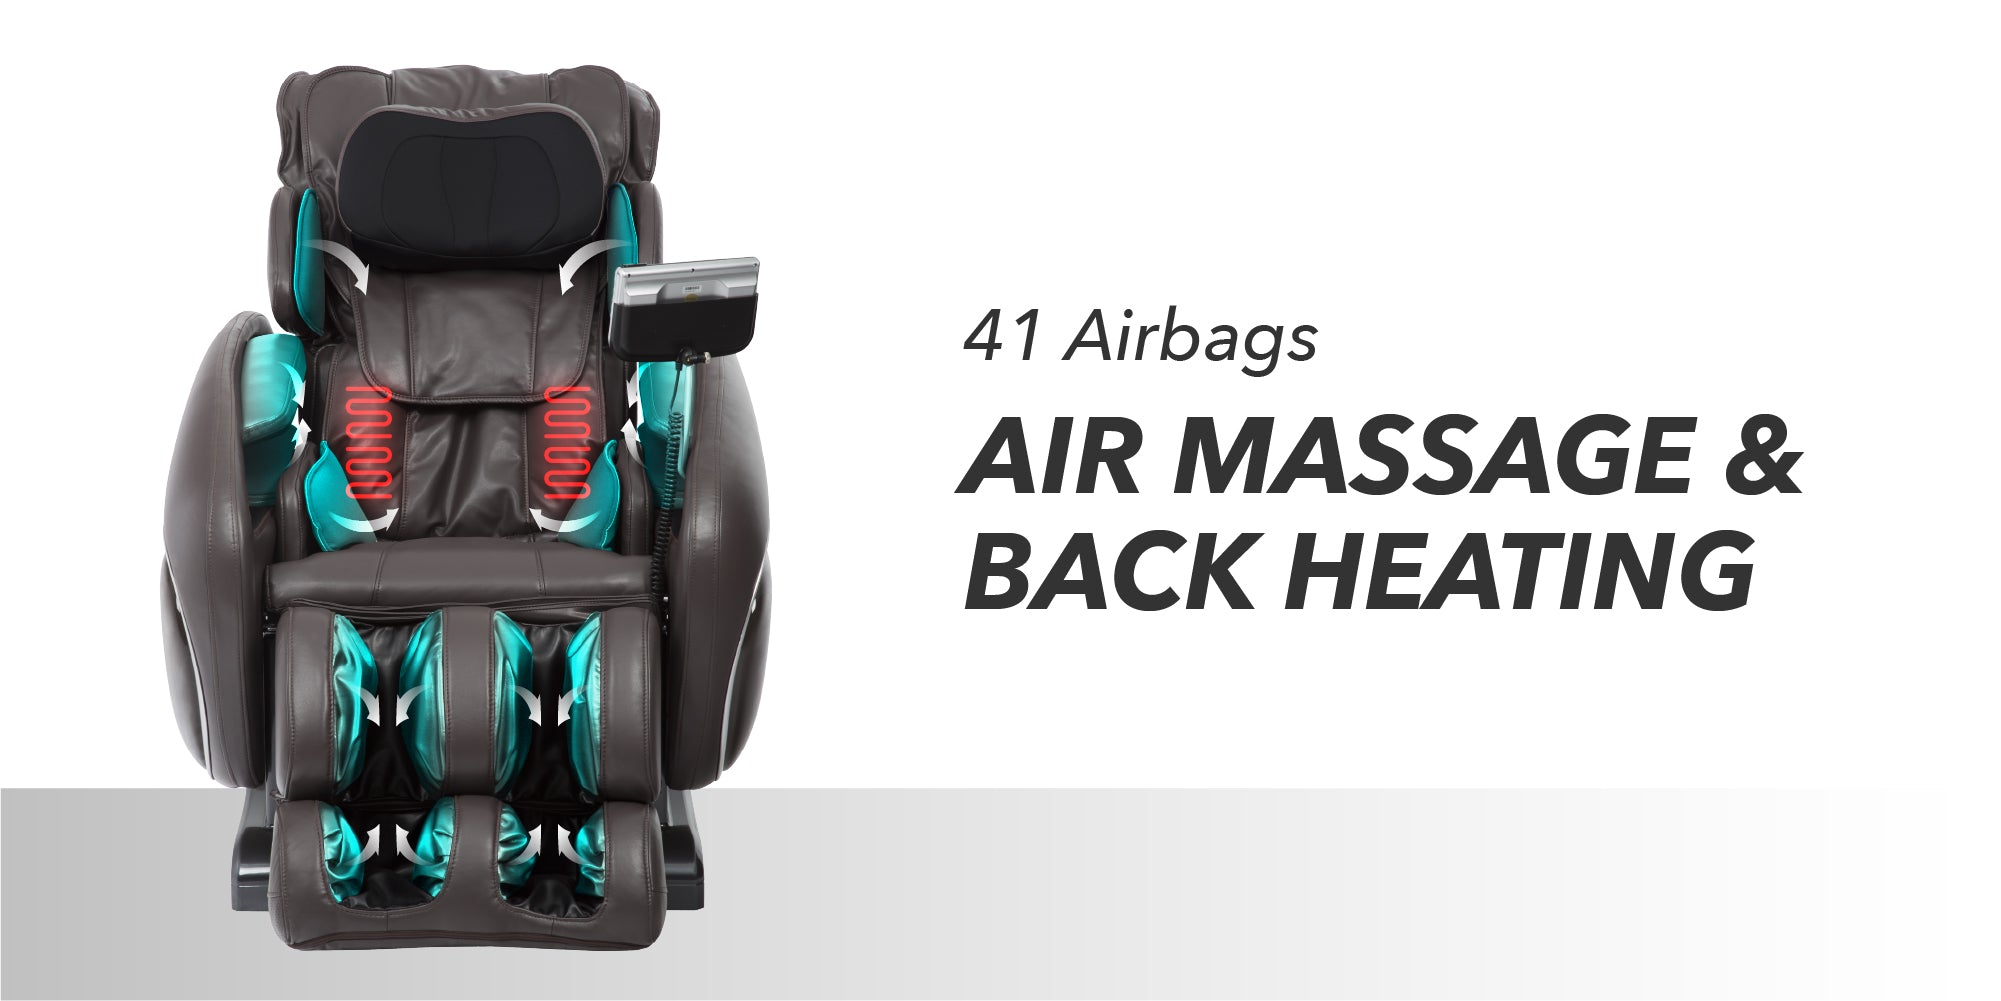 41 Airbags Air Massage & Back Heating